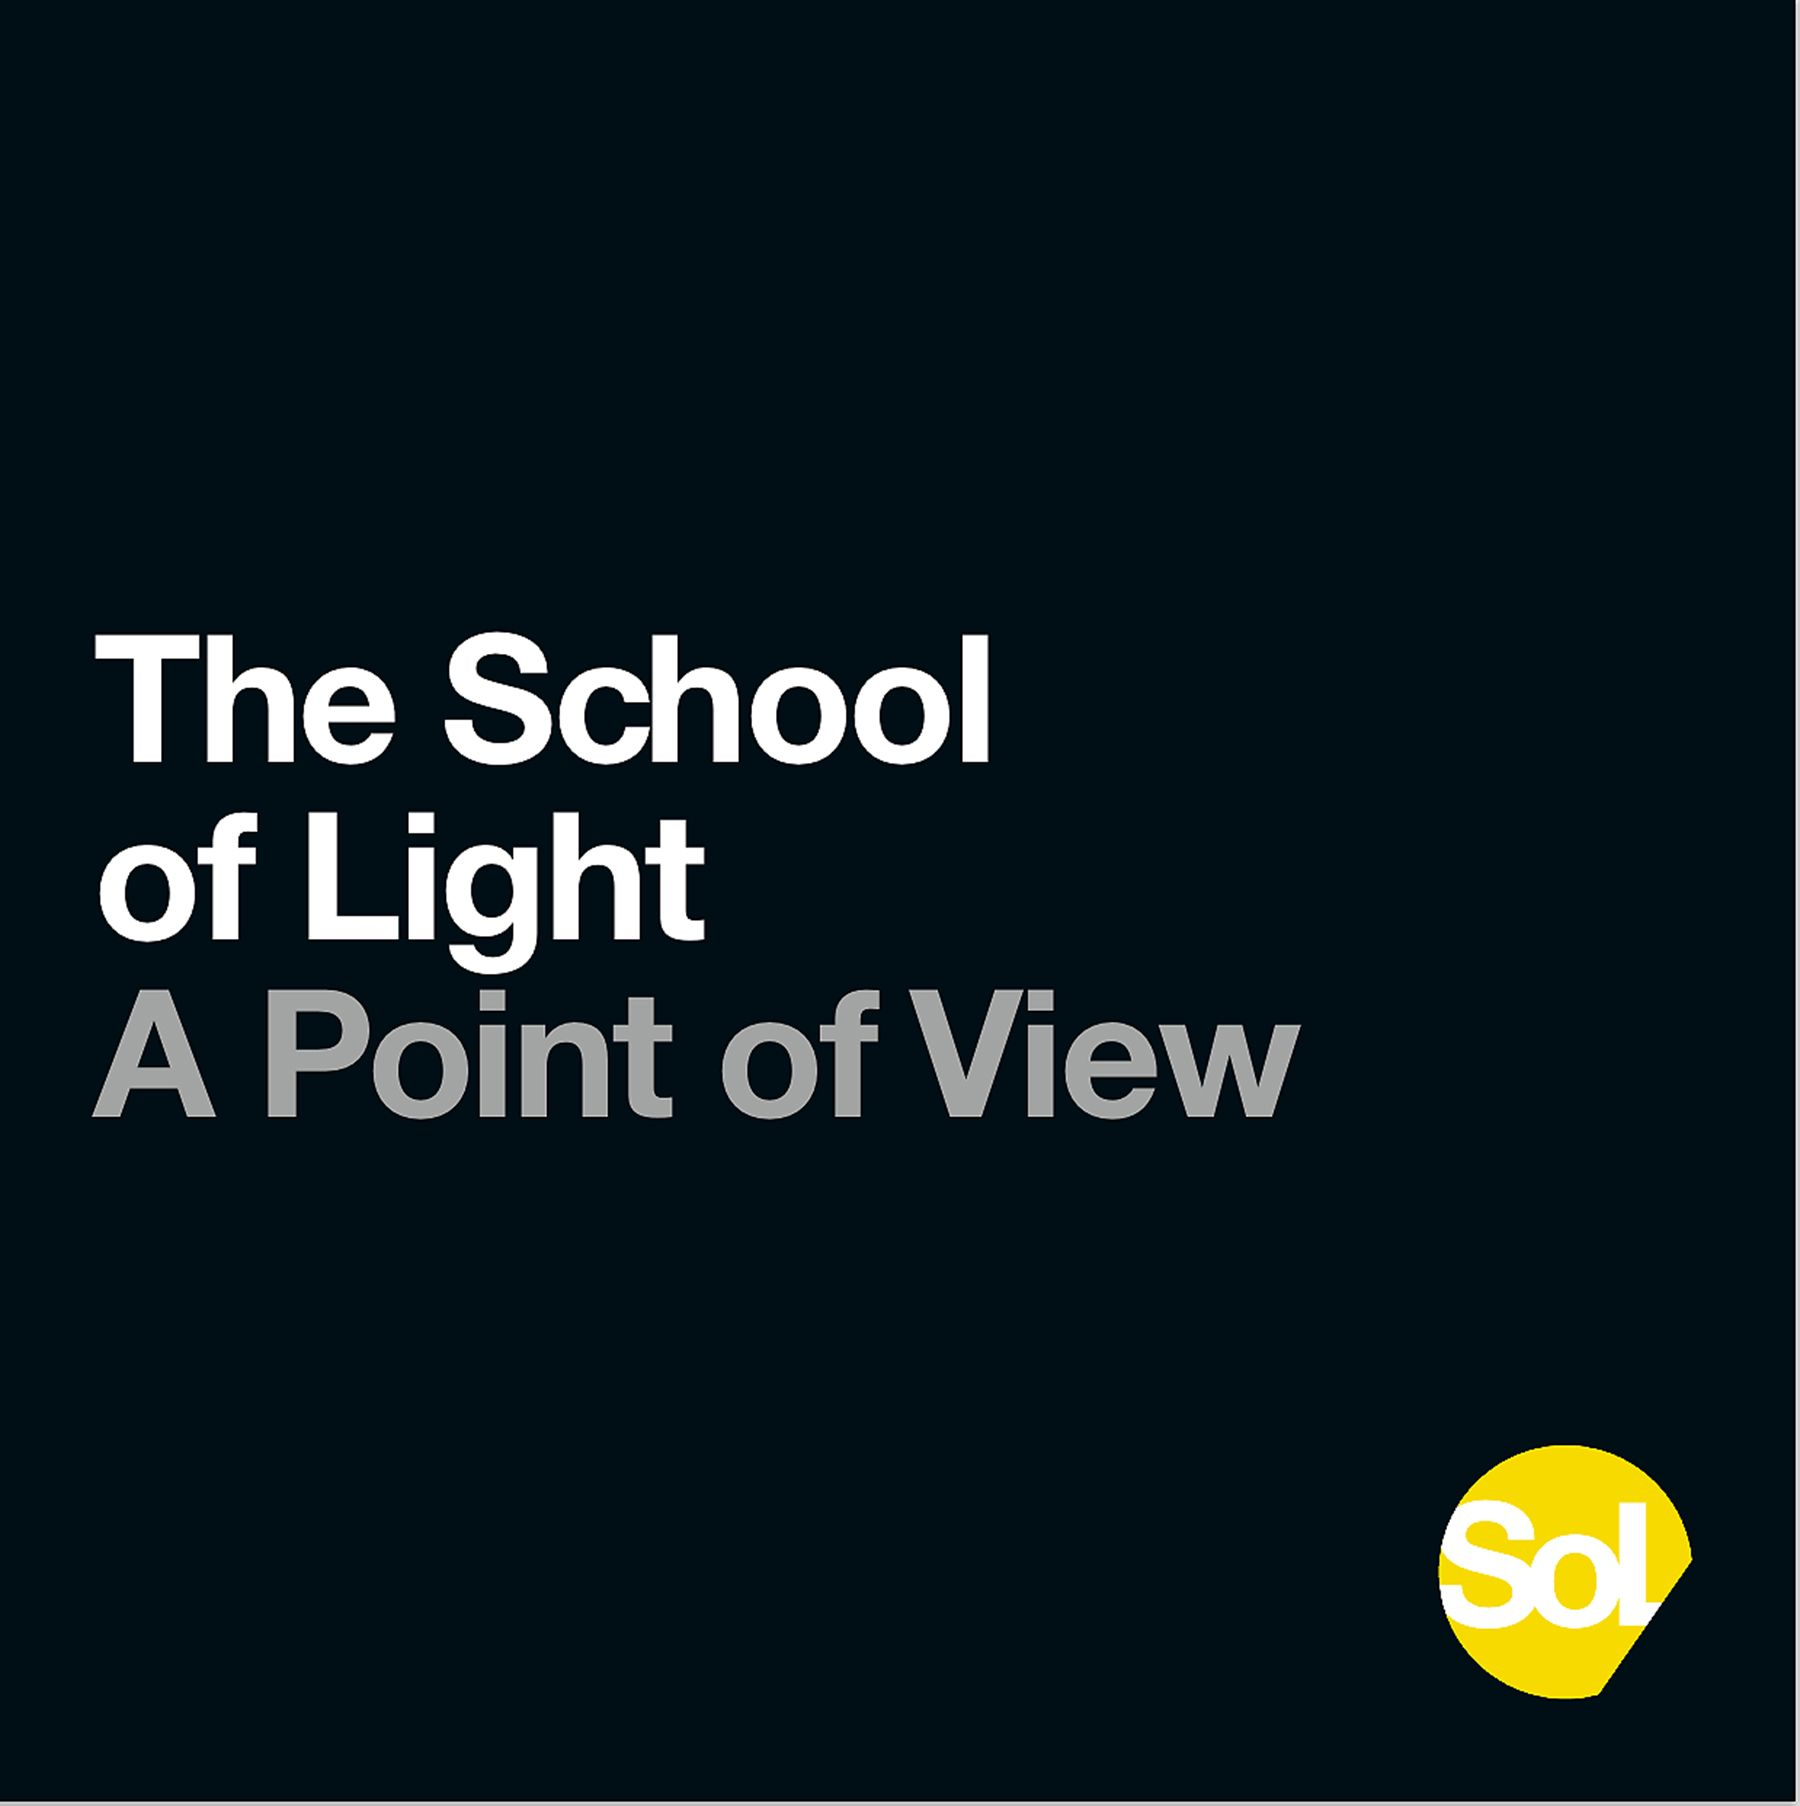 The School of Light: A Point of View